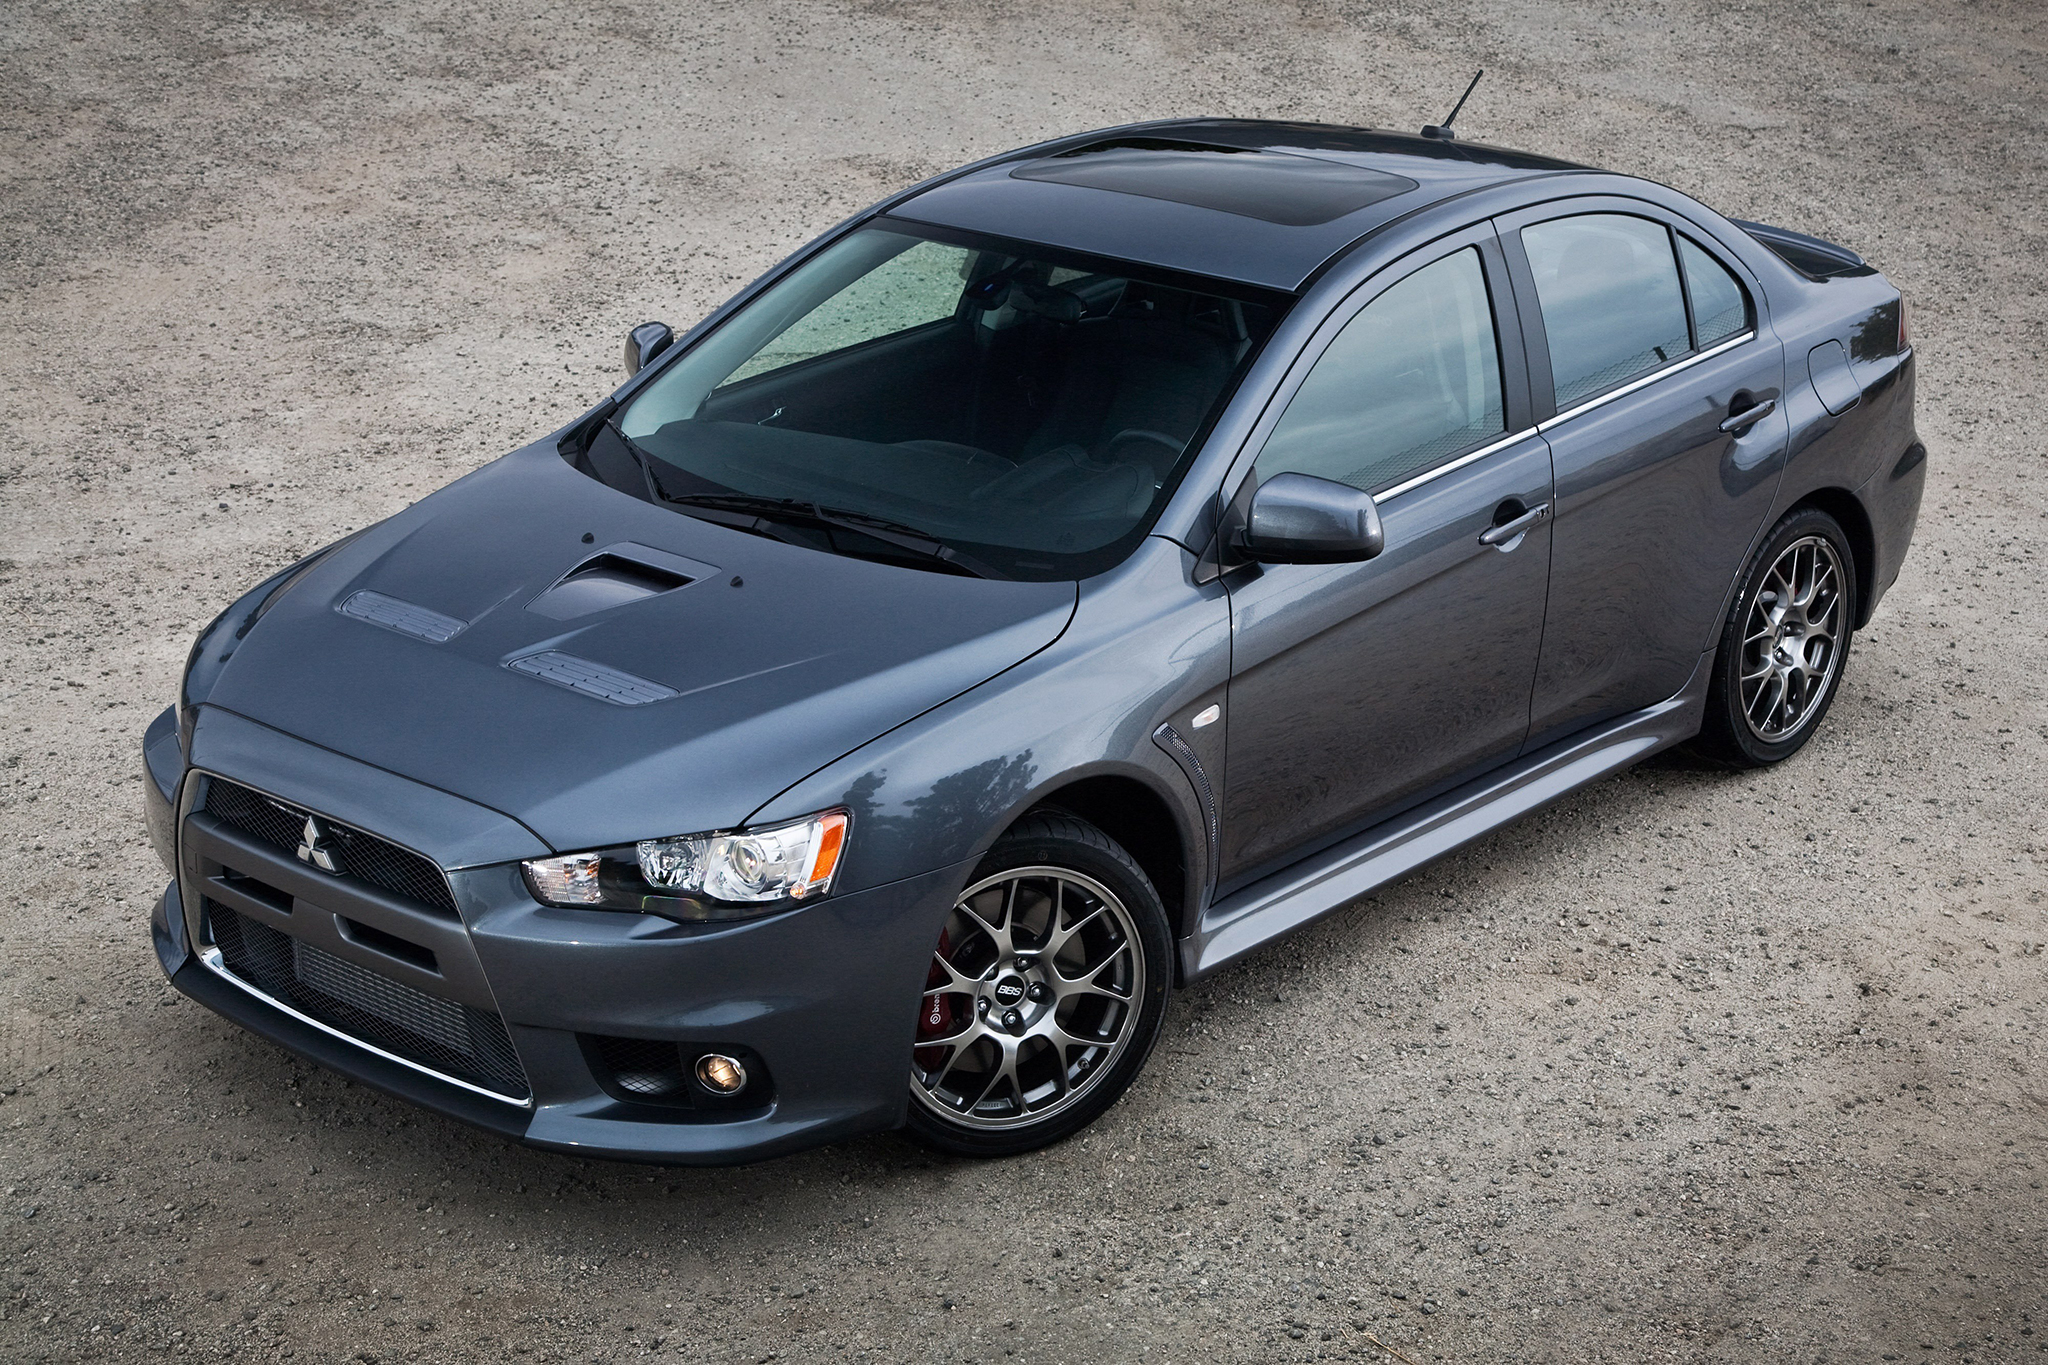 2015 mitsubishi lancer evolution updated for its last year - motortrend